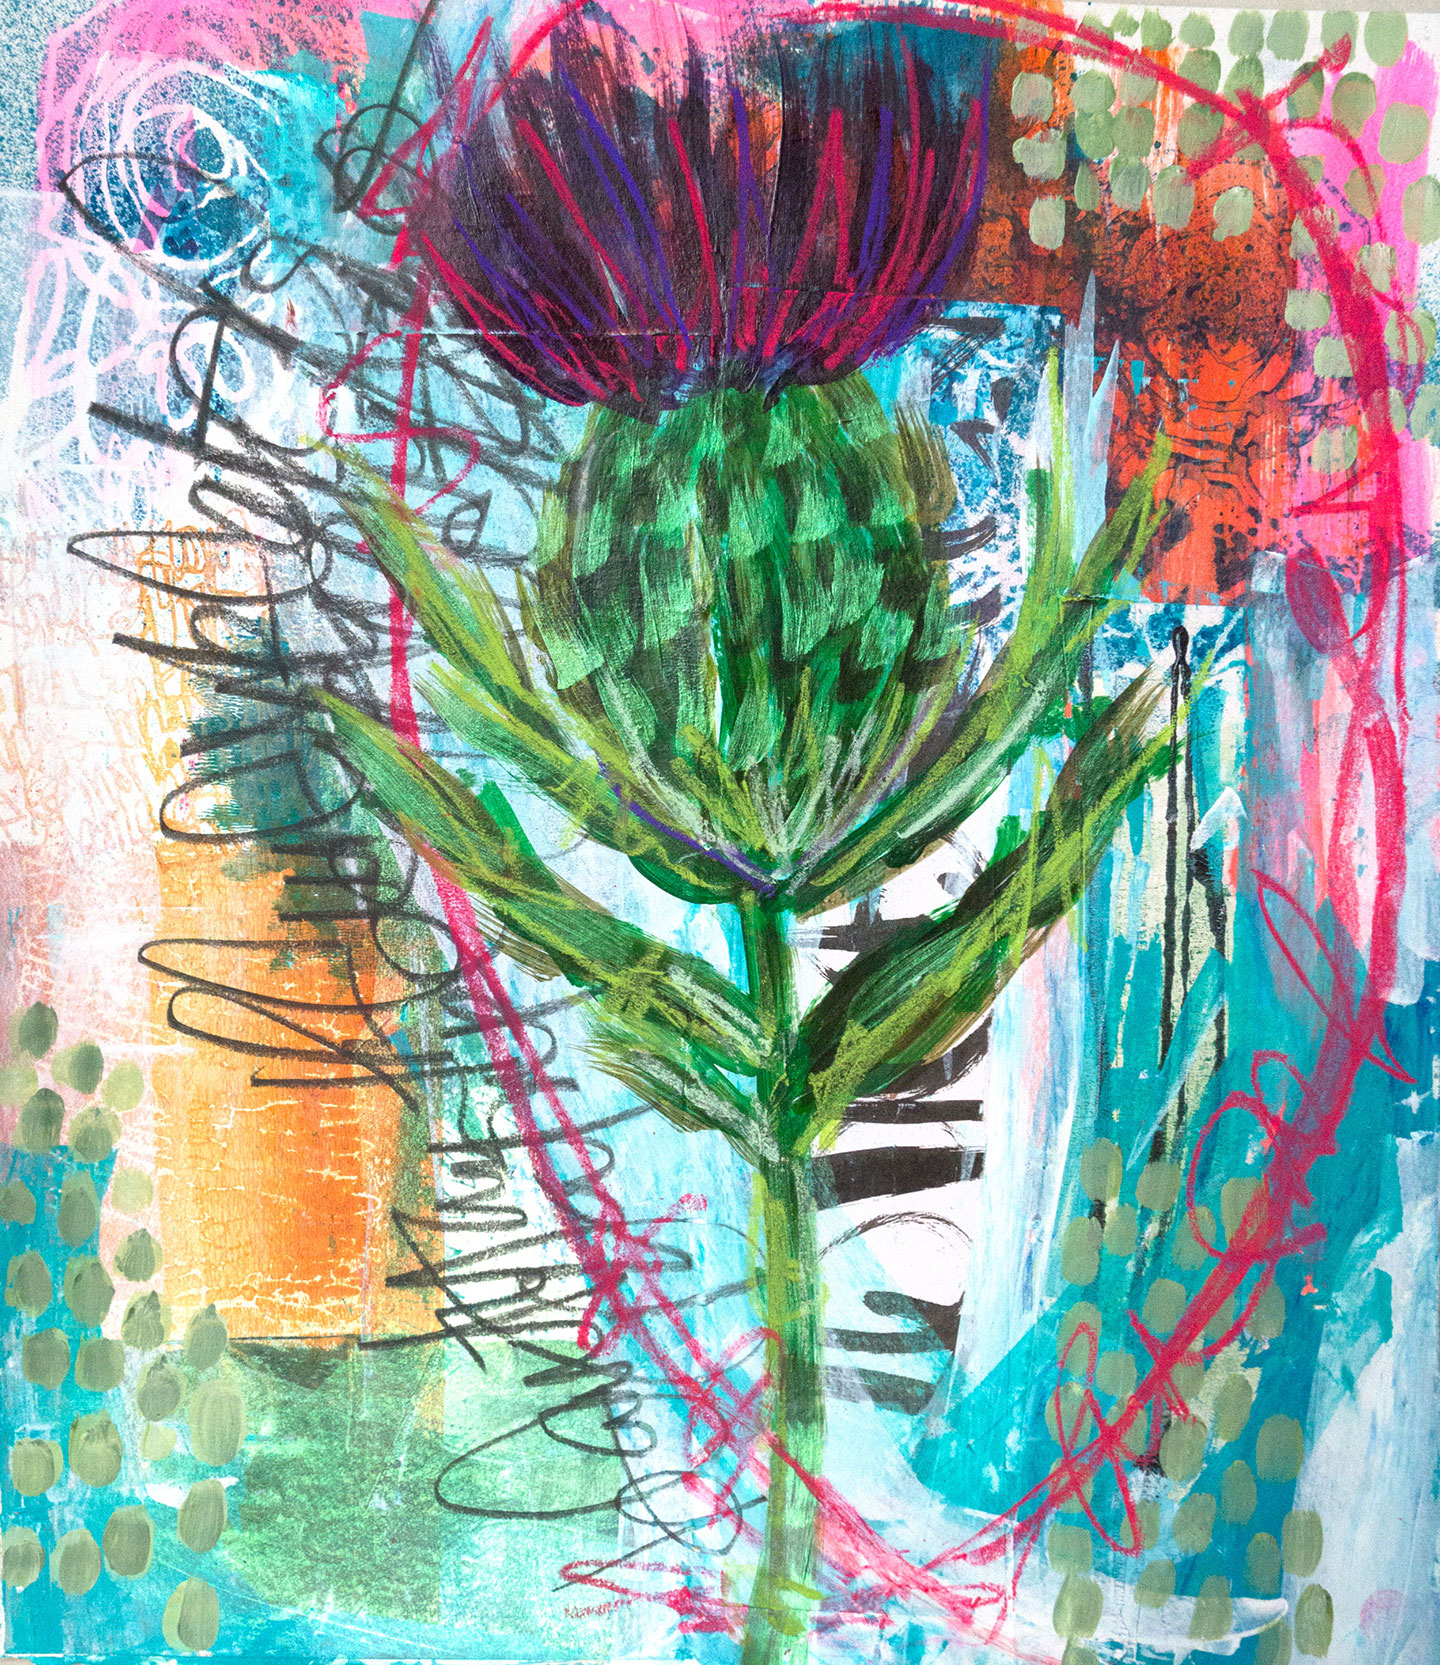 Mixed Media Strathmore Artist Papers